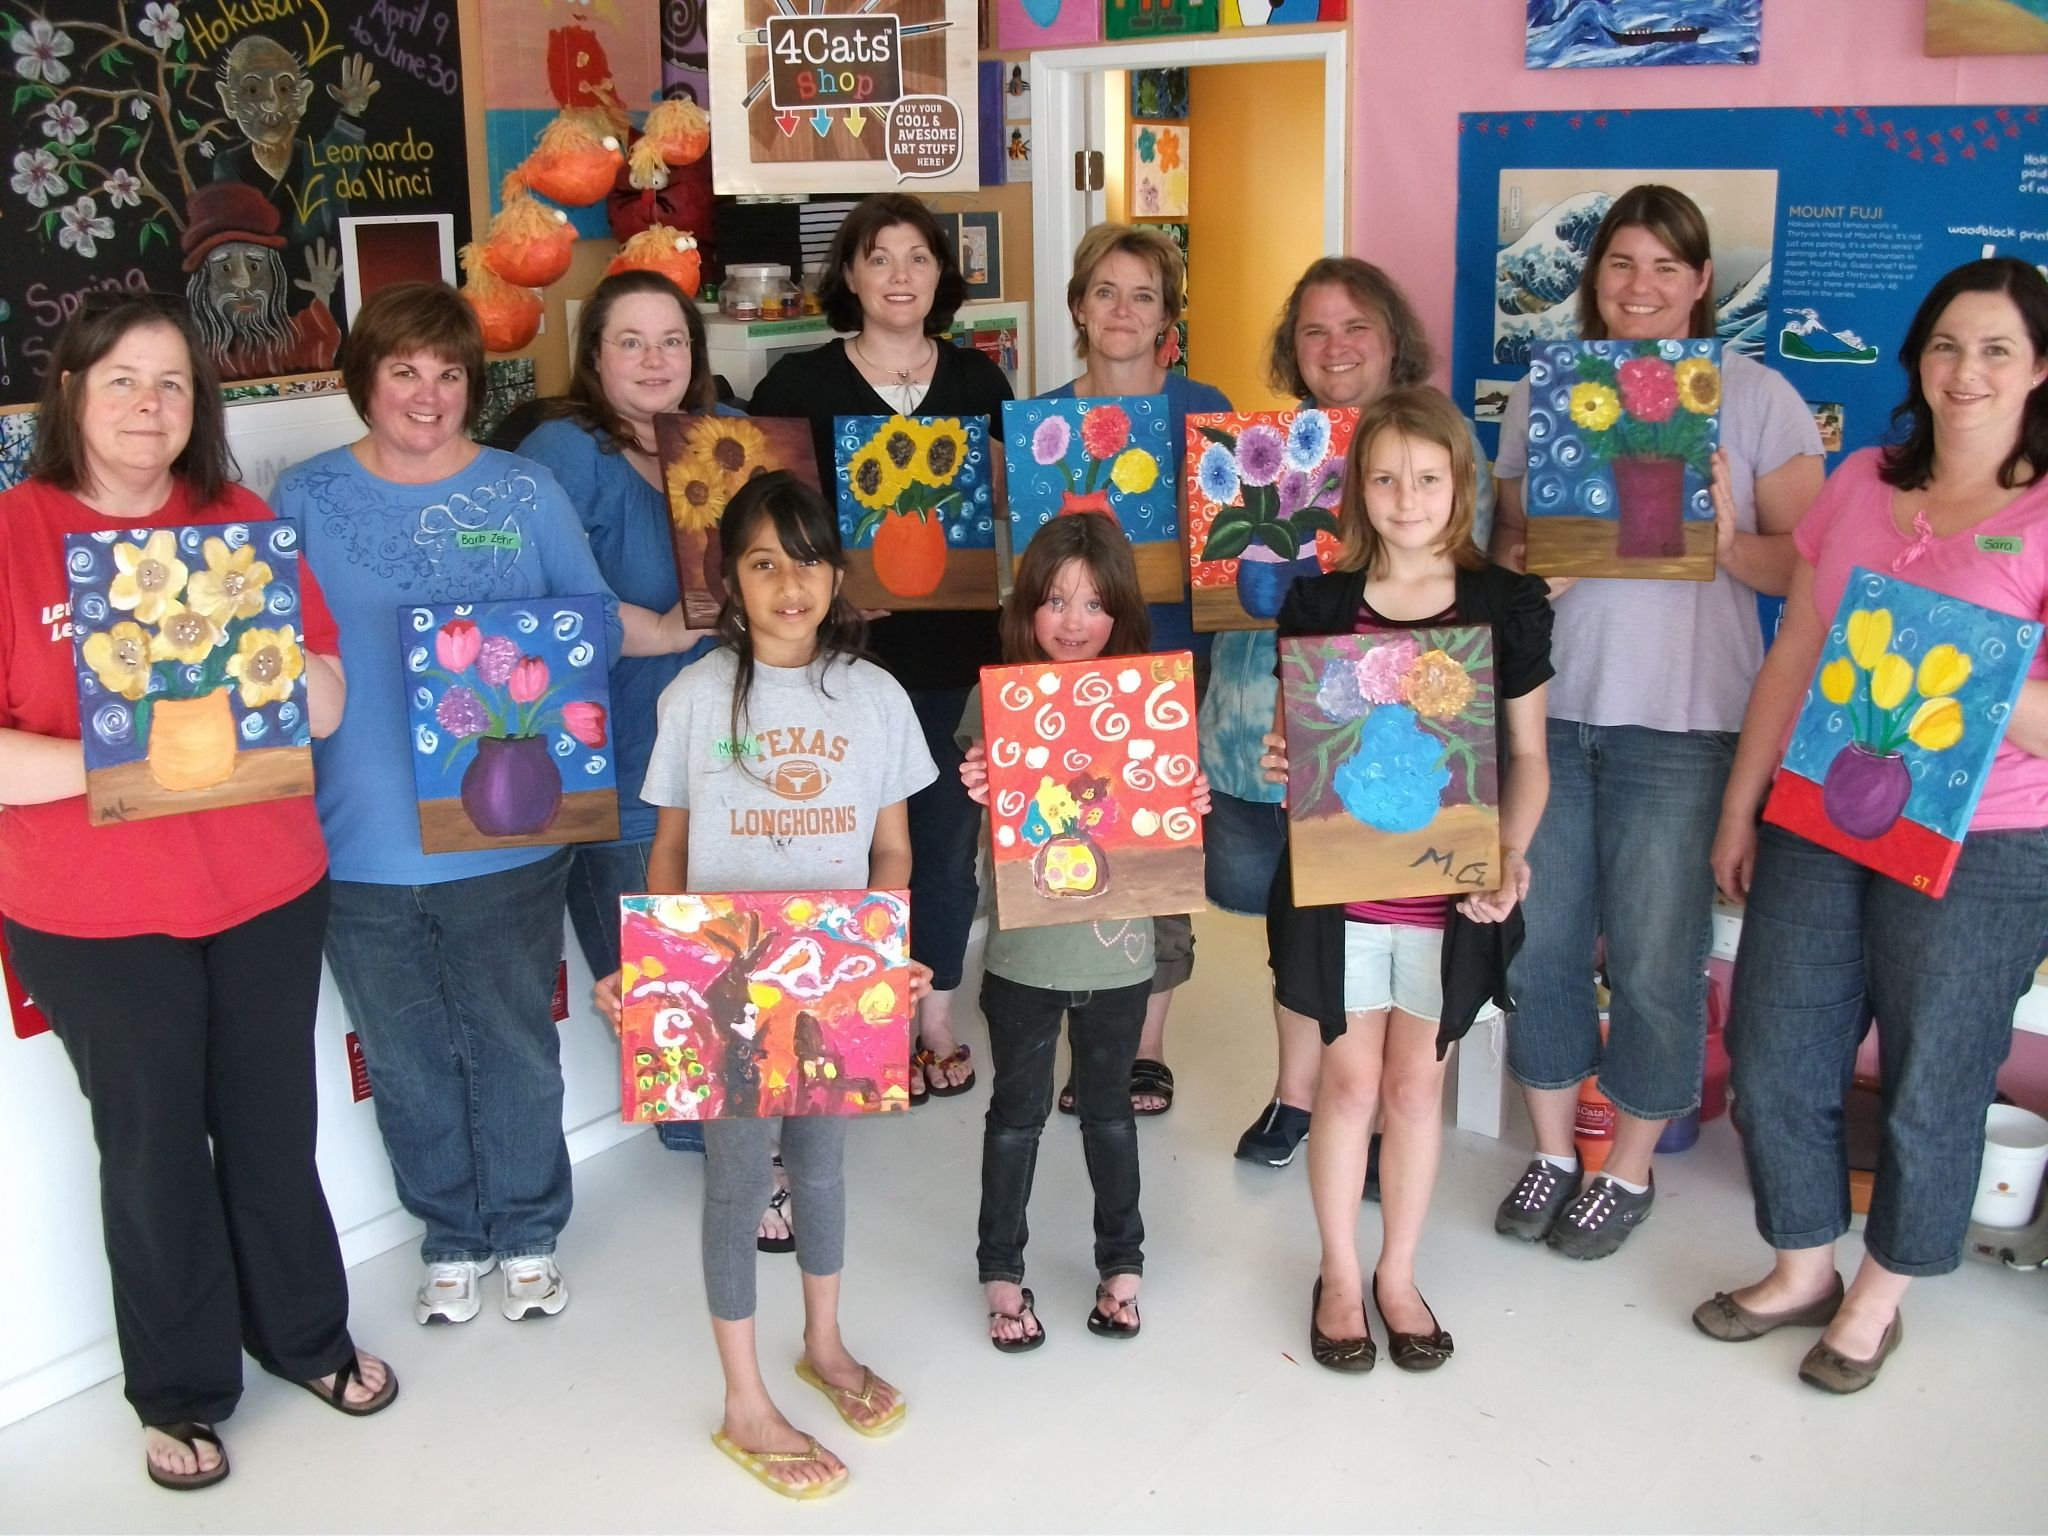 A painting party! You can have an art exhibit FUNdraiser afterward, or even sell your masterpieces!